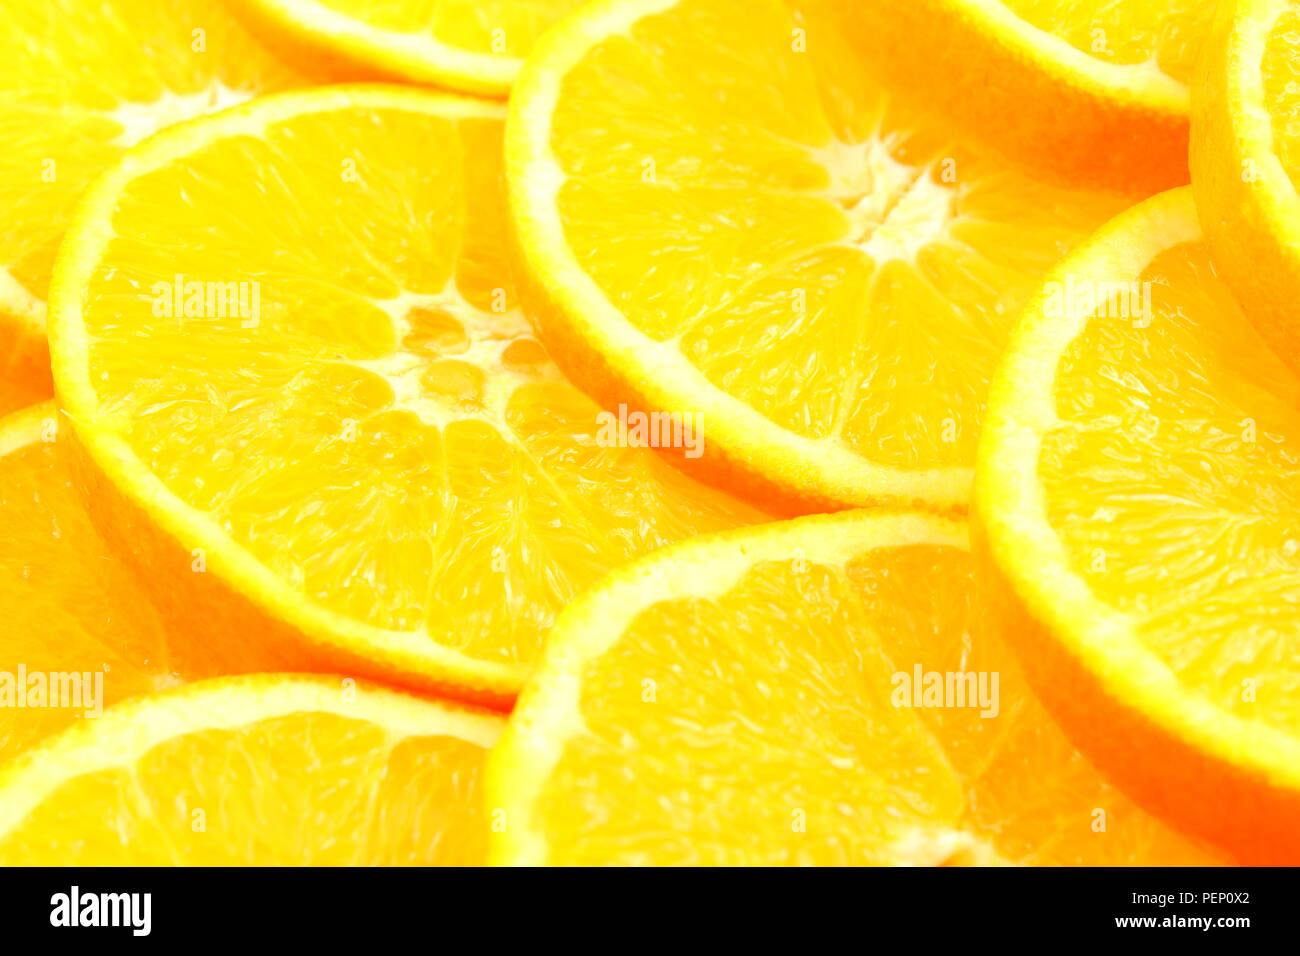 slices of fresh orange fruits as a food background texture - Stock Image